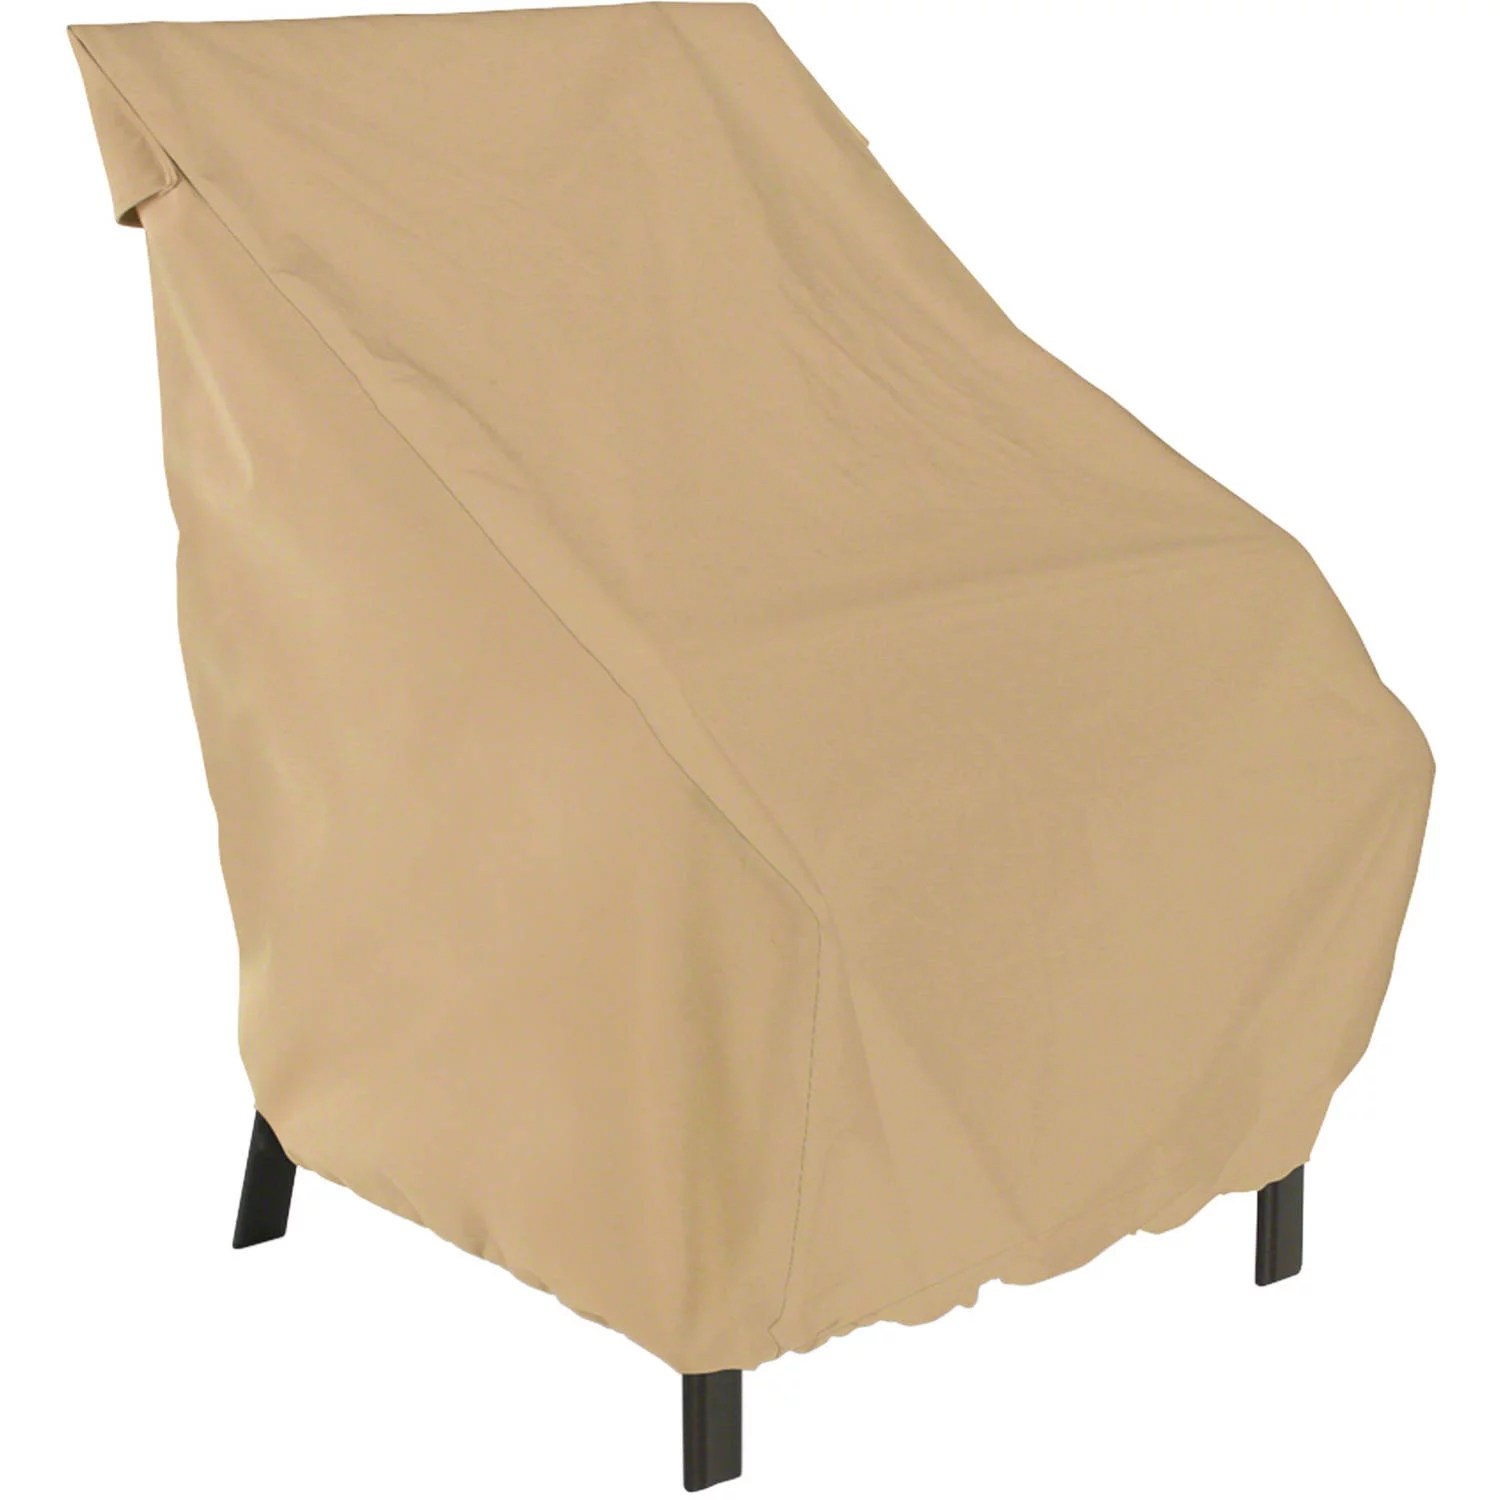 green patio chair covers spandex party city terrazzo standard cover all weather protection fits chairs 28 5 l x 25 d walmart com